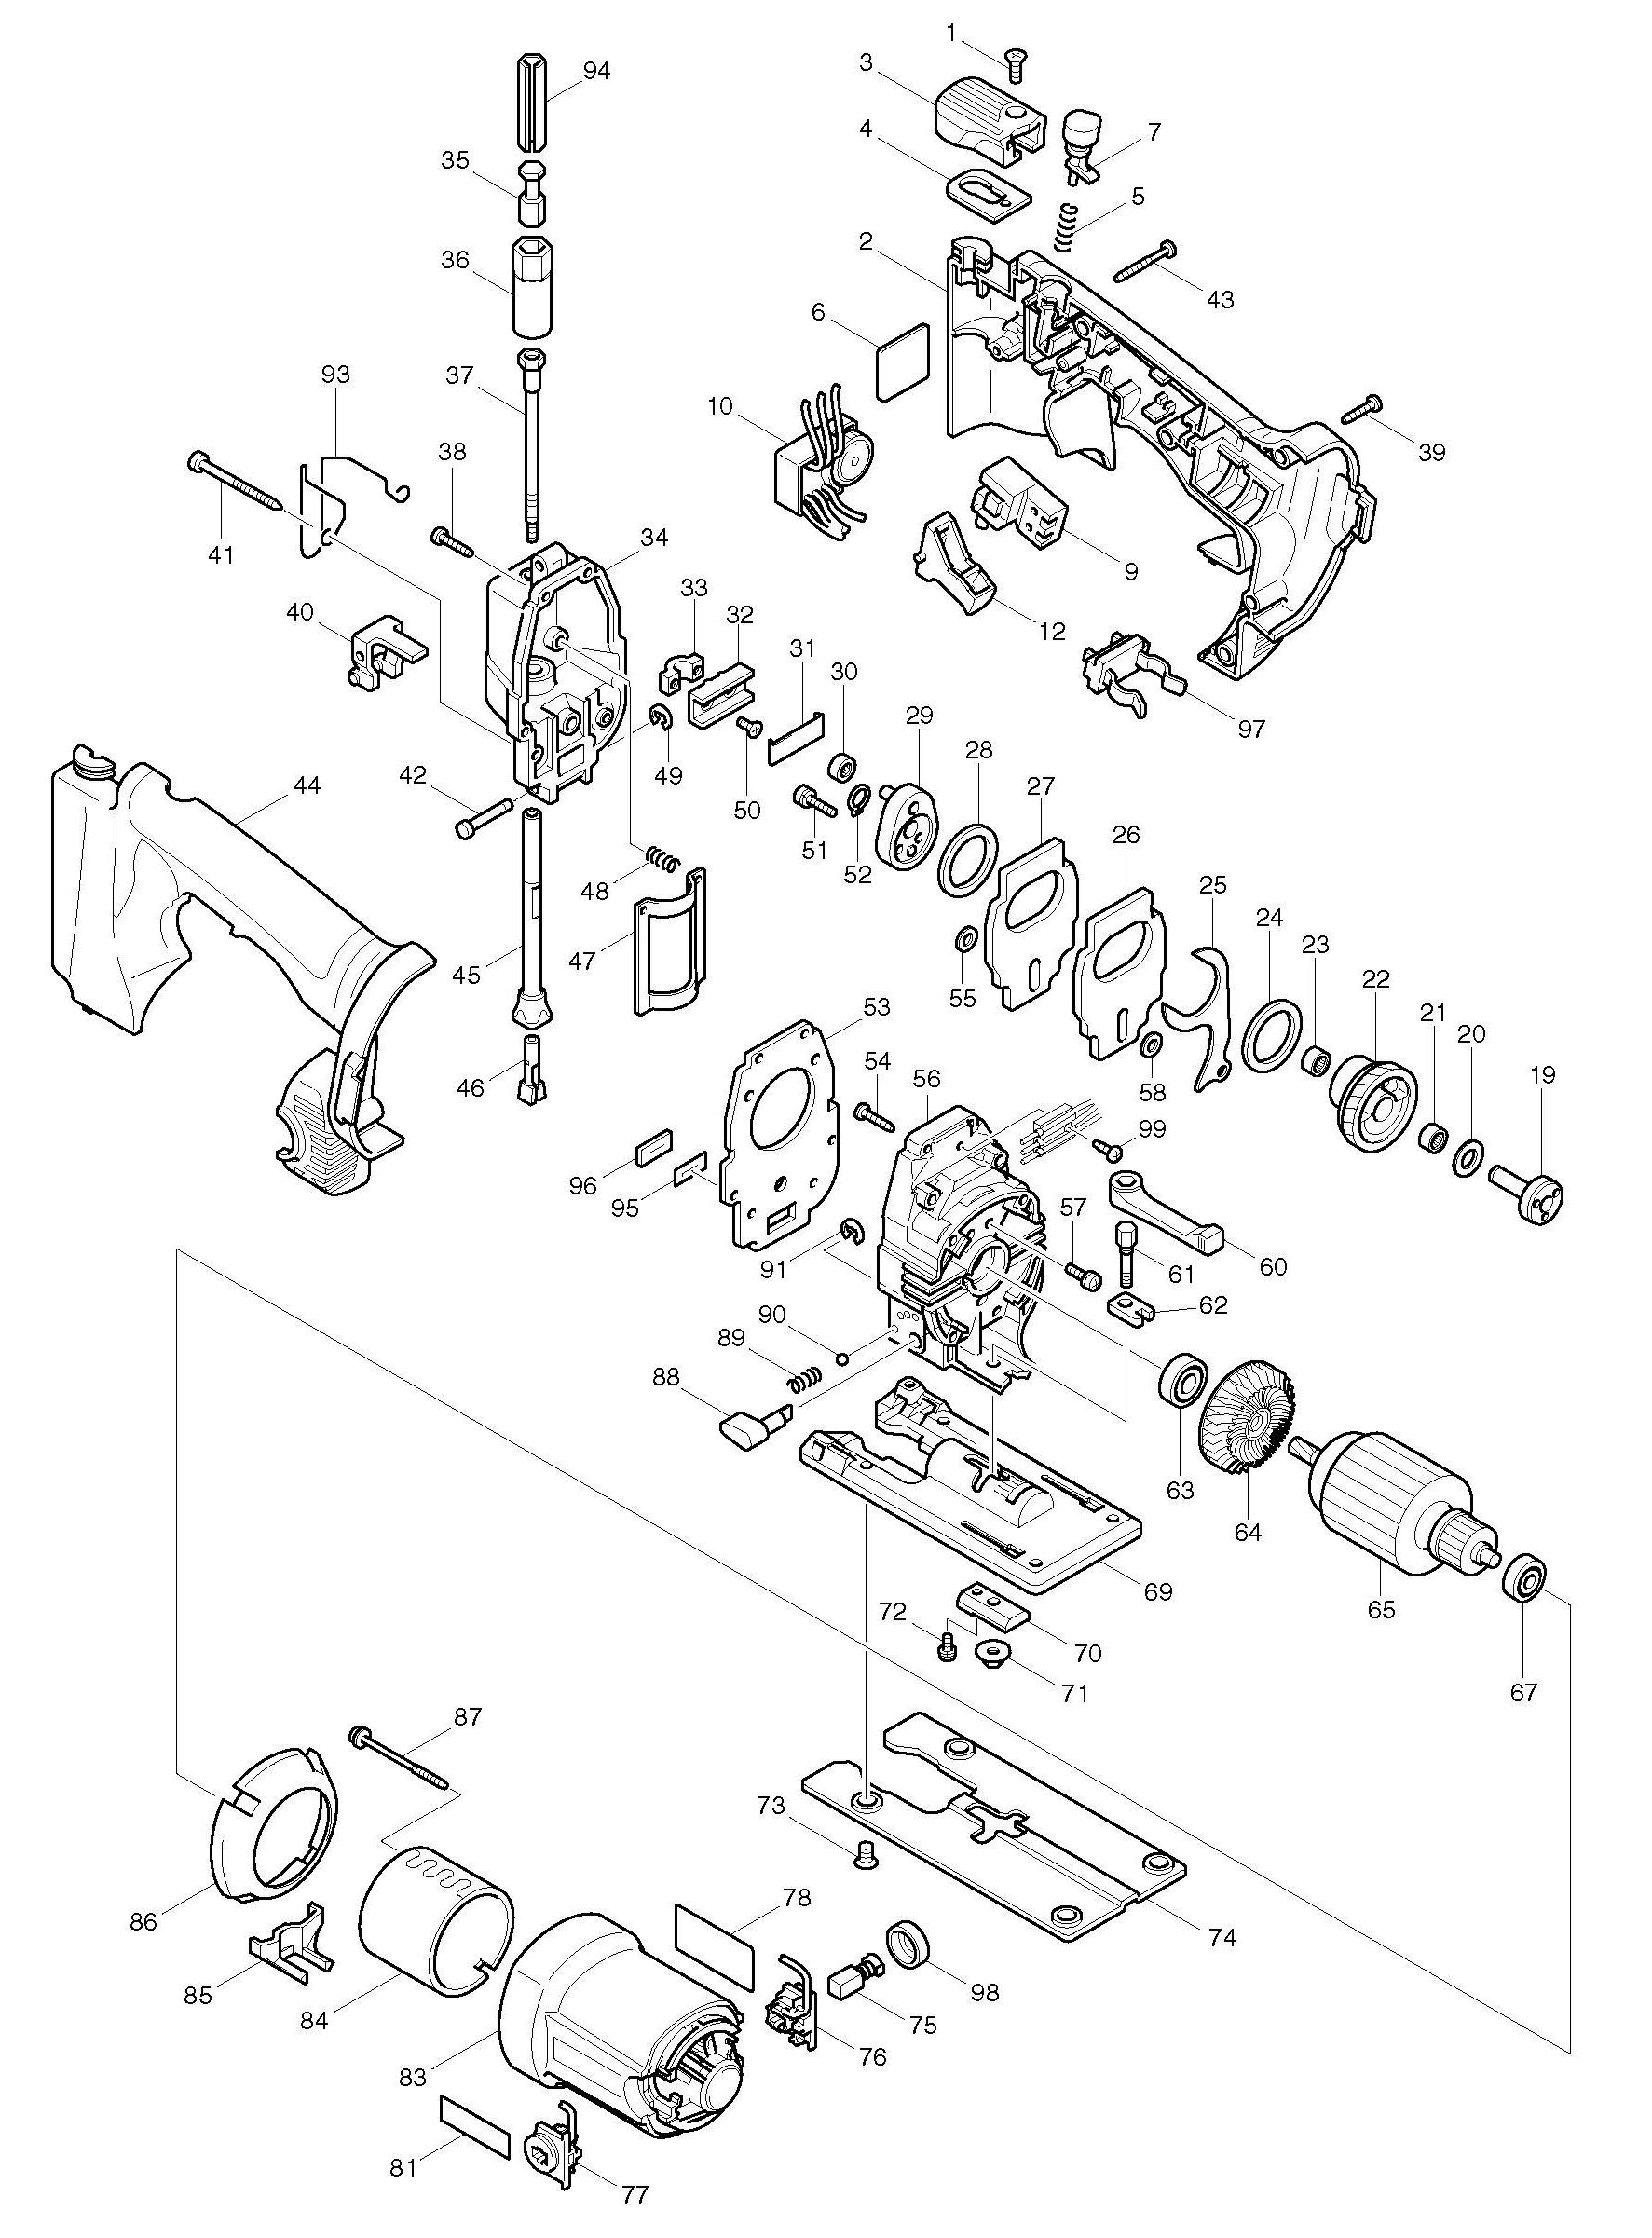 Spares for Makita 4334d Cordless Variable Speed Jigsaw